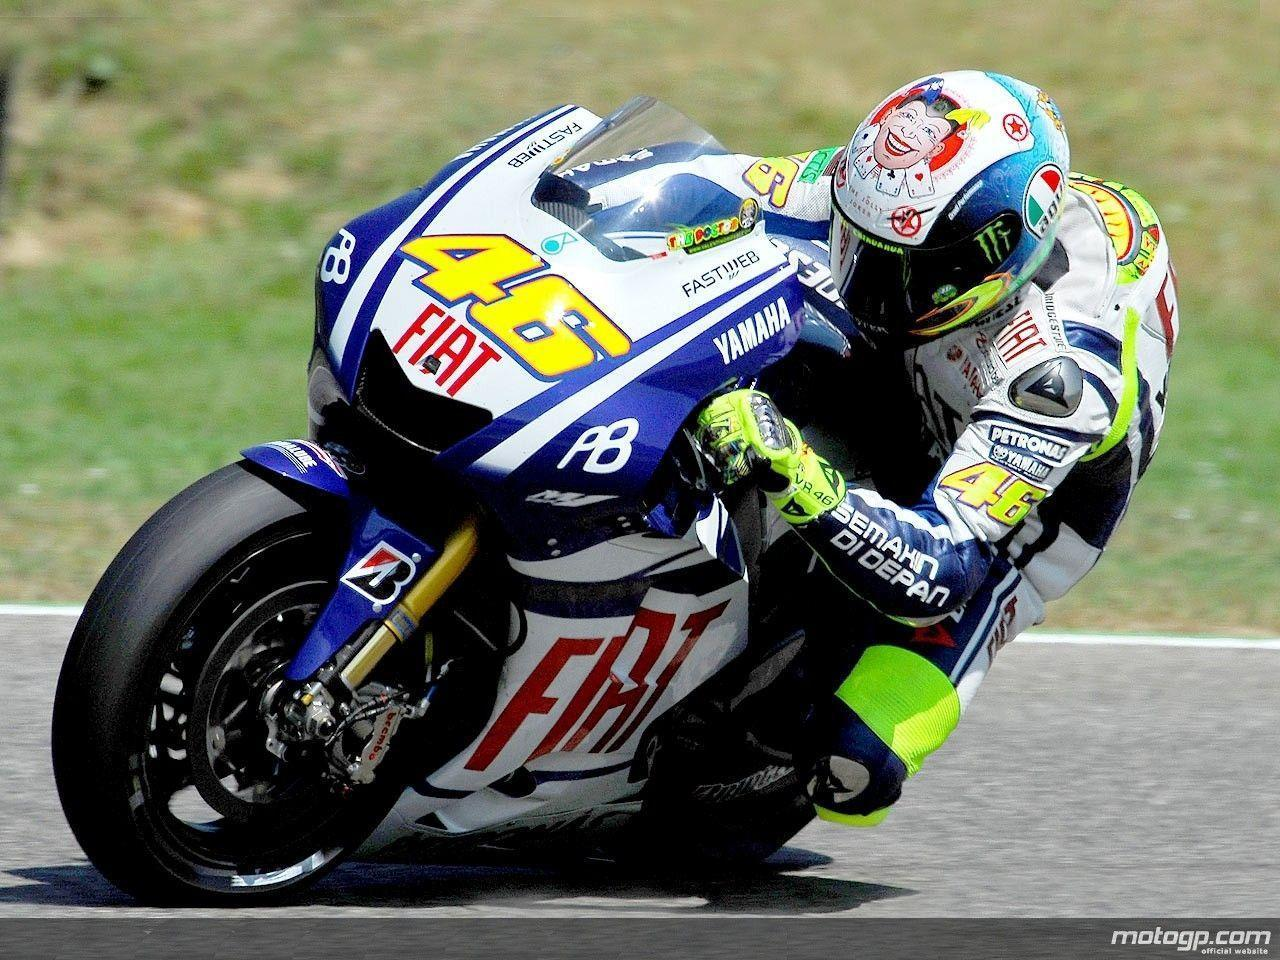 Valentino Rossi: definitely THE BEST moto biker ever seen on earth ...